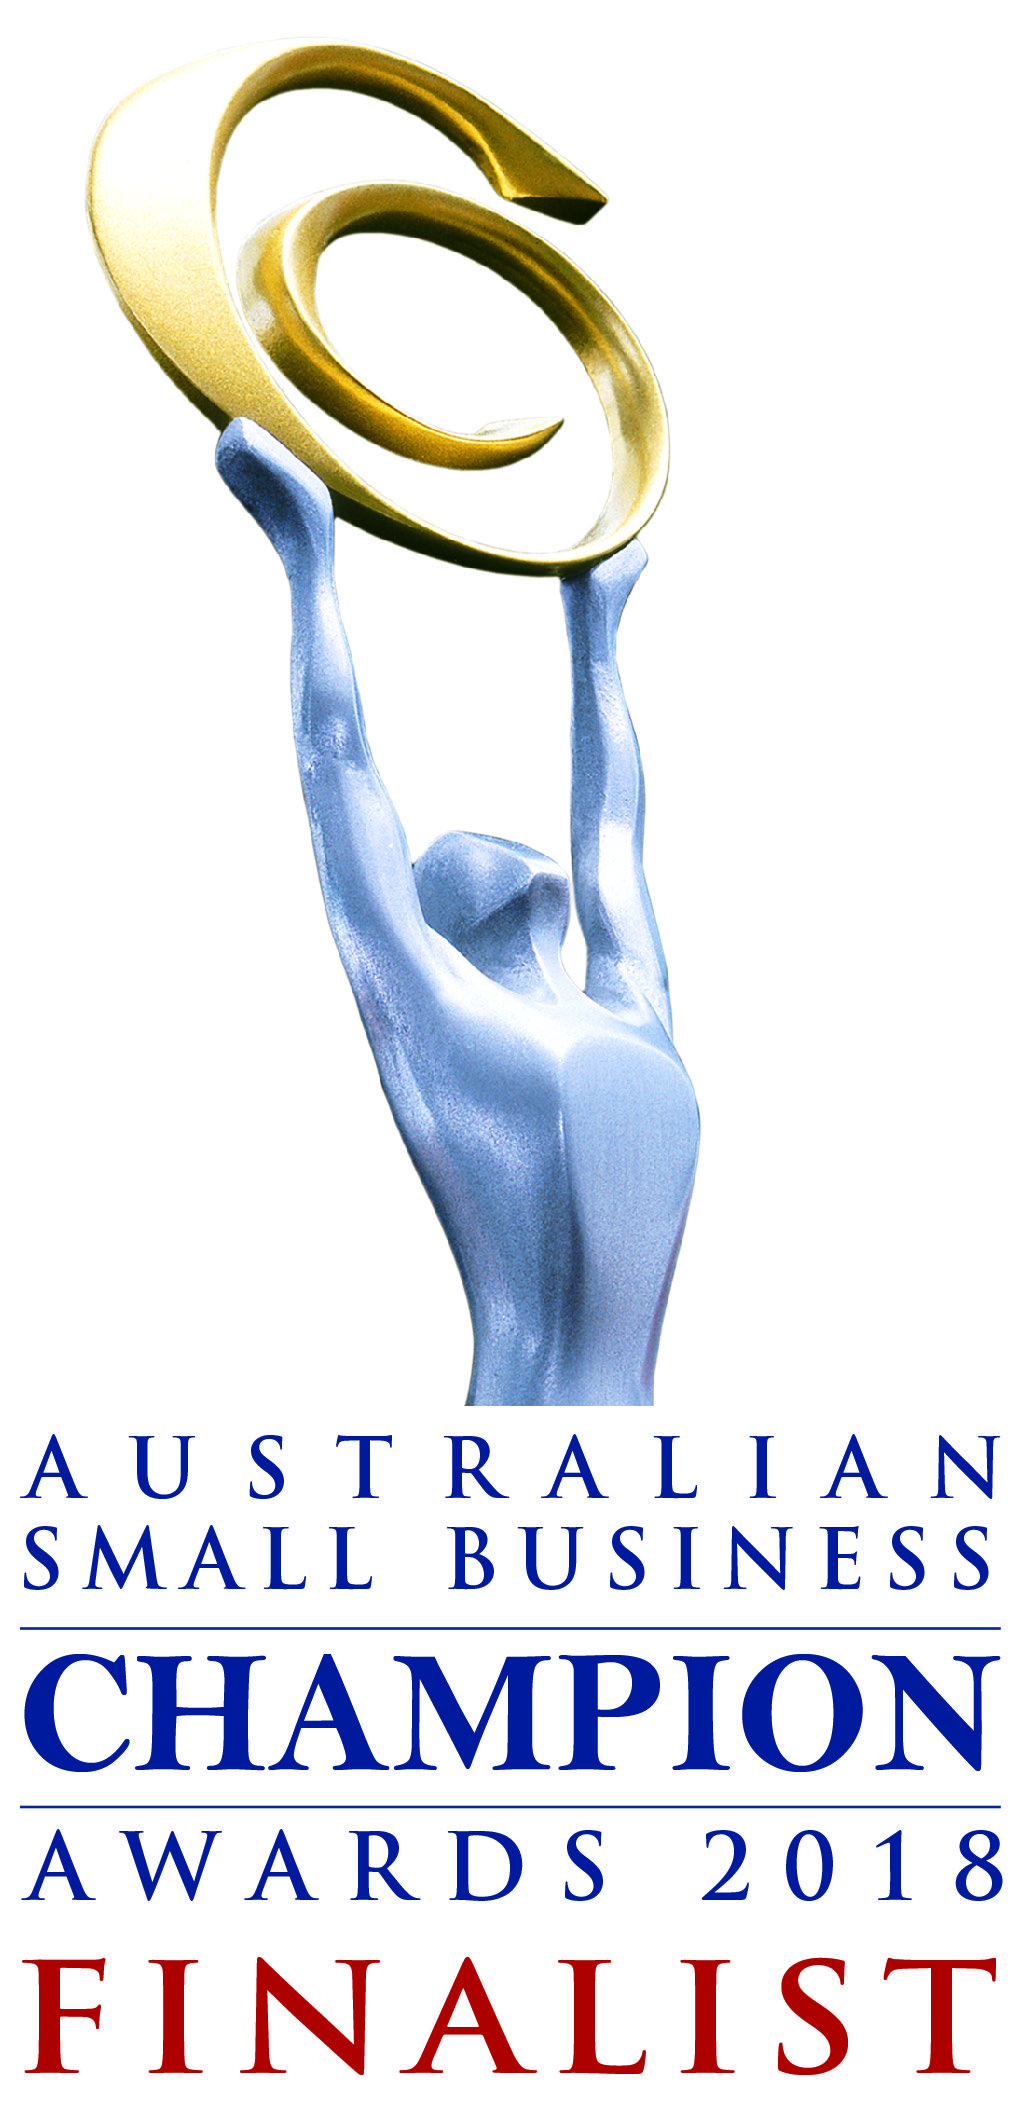 australian business champion awards 2018